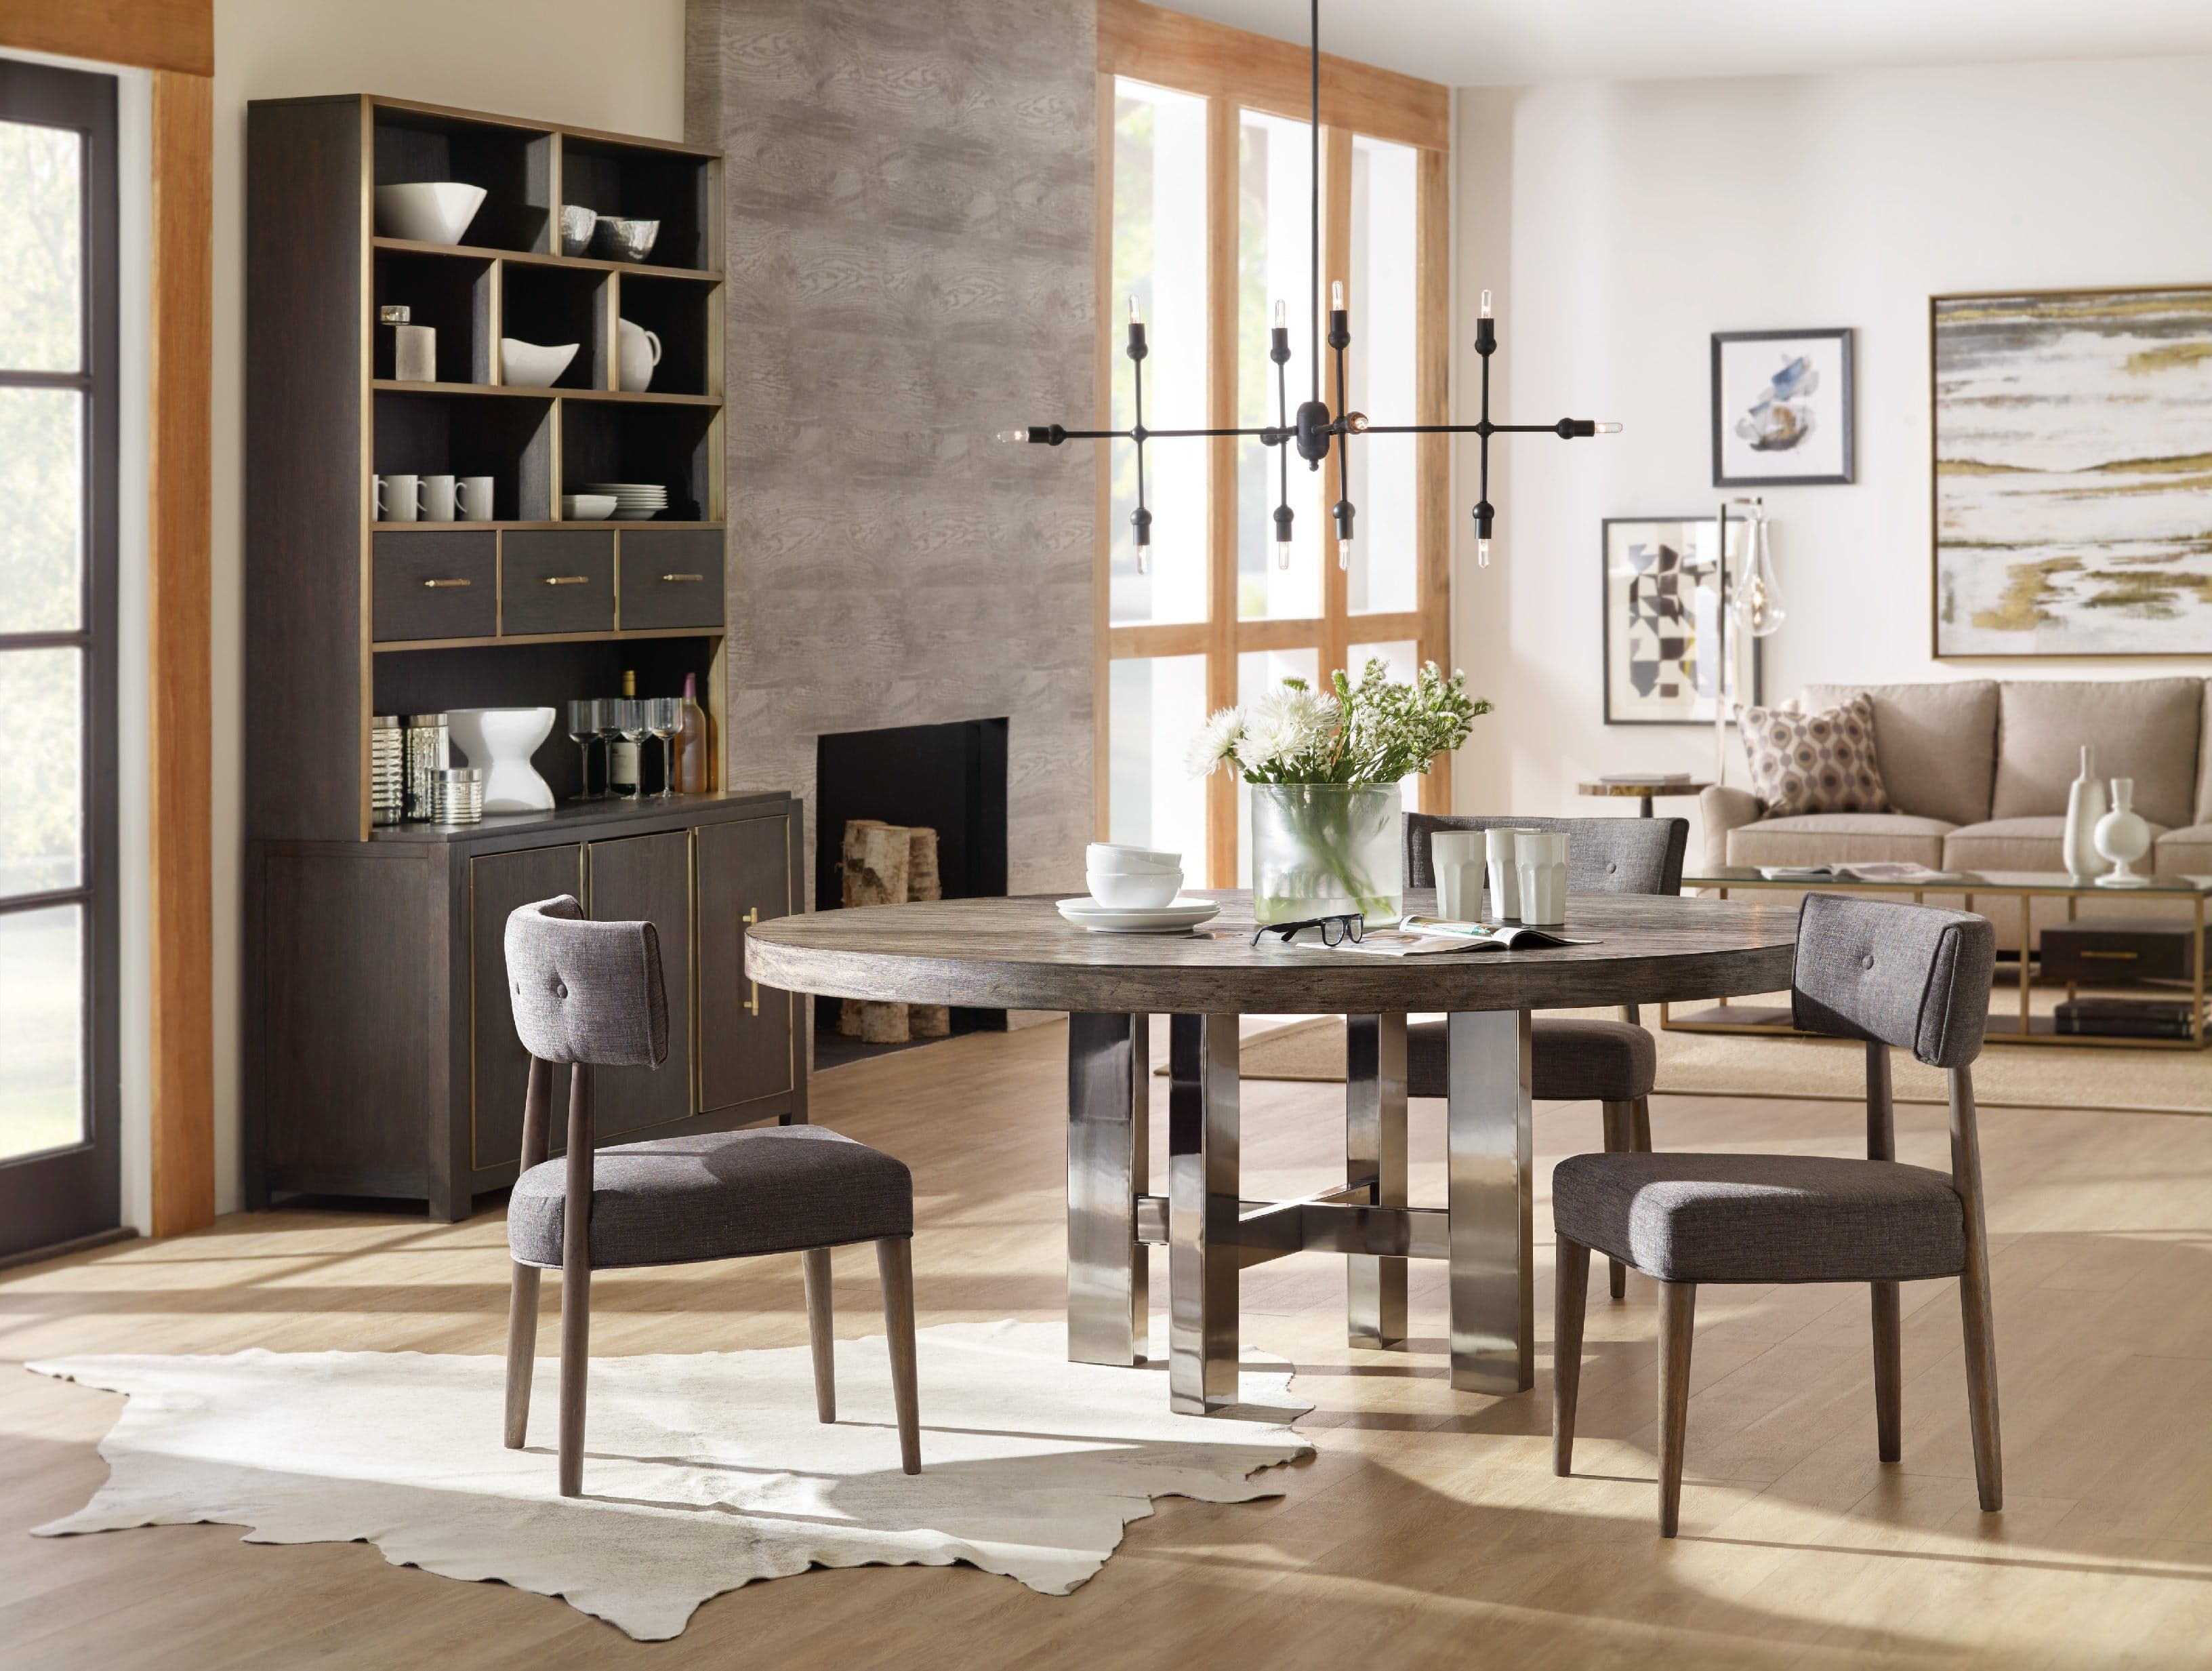 Hooker Furniture Dining Room Curata Upholstered Chair 1600-75510-MWD ...